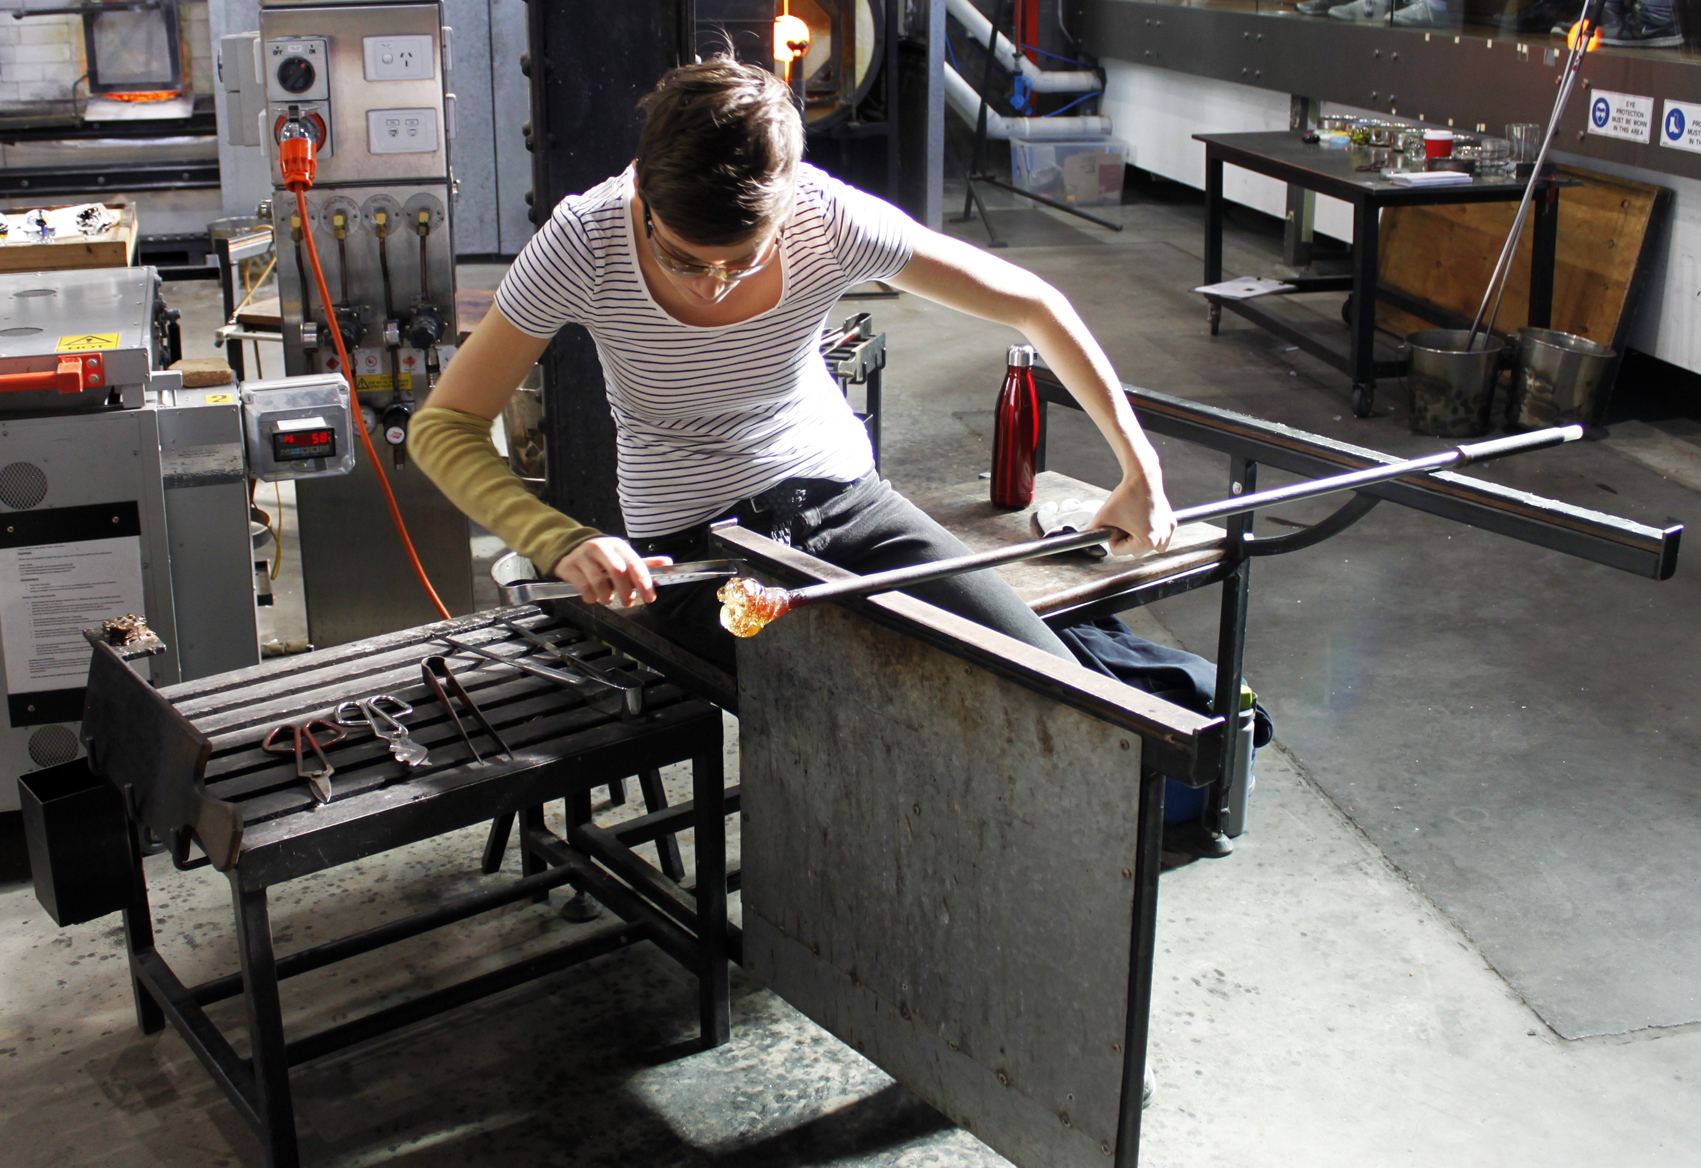 Australian artist, glass sculptor studio visit - Emilie Patteson, Canberra Glassworks, The Corner Store Gallery, photograph by Madeline Young